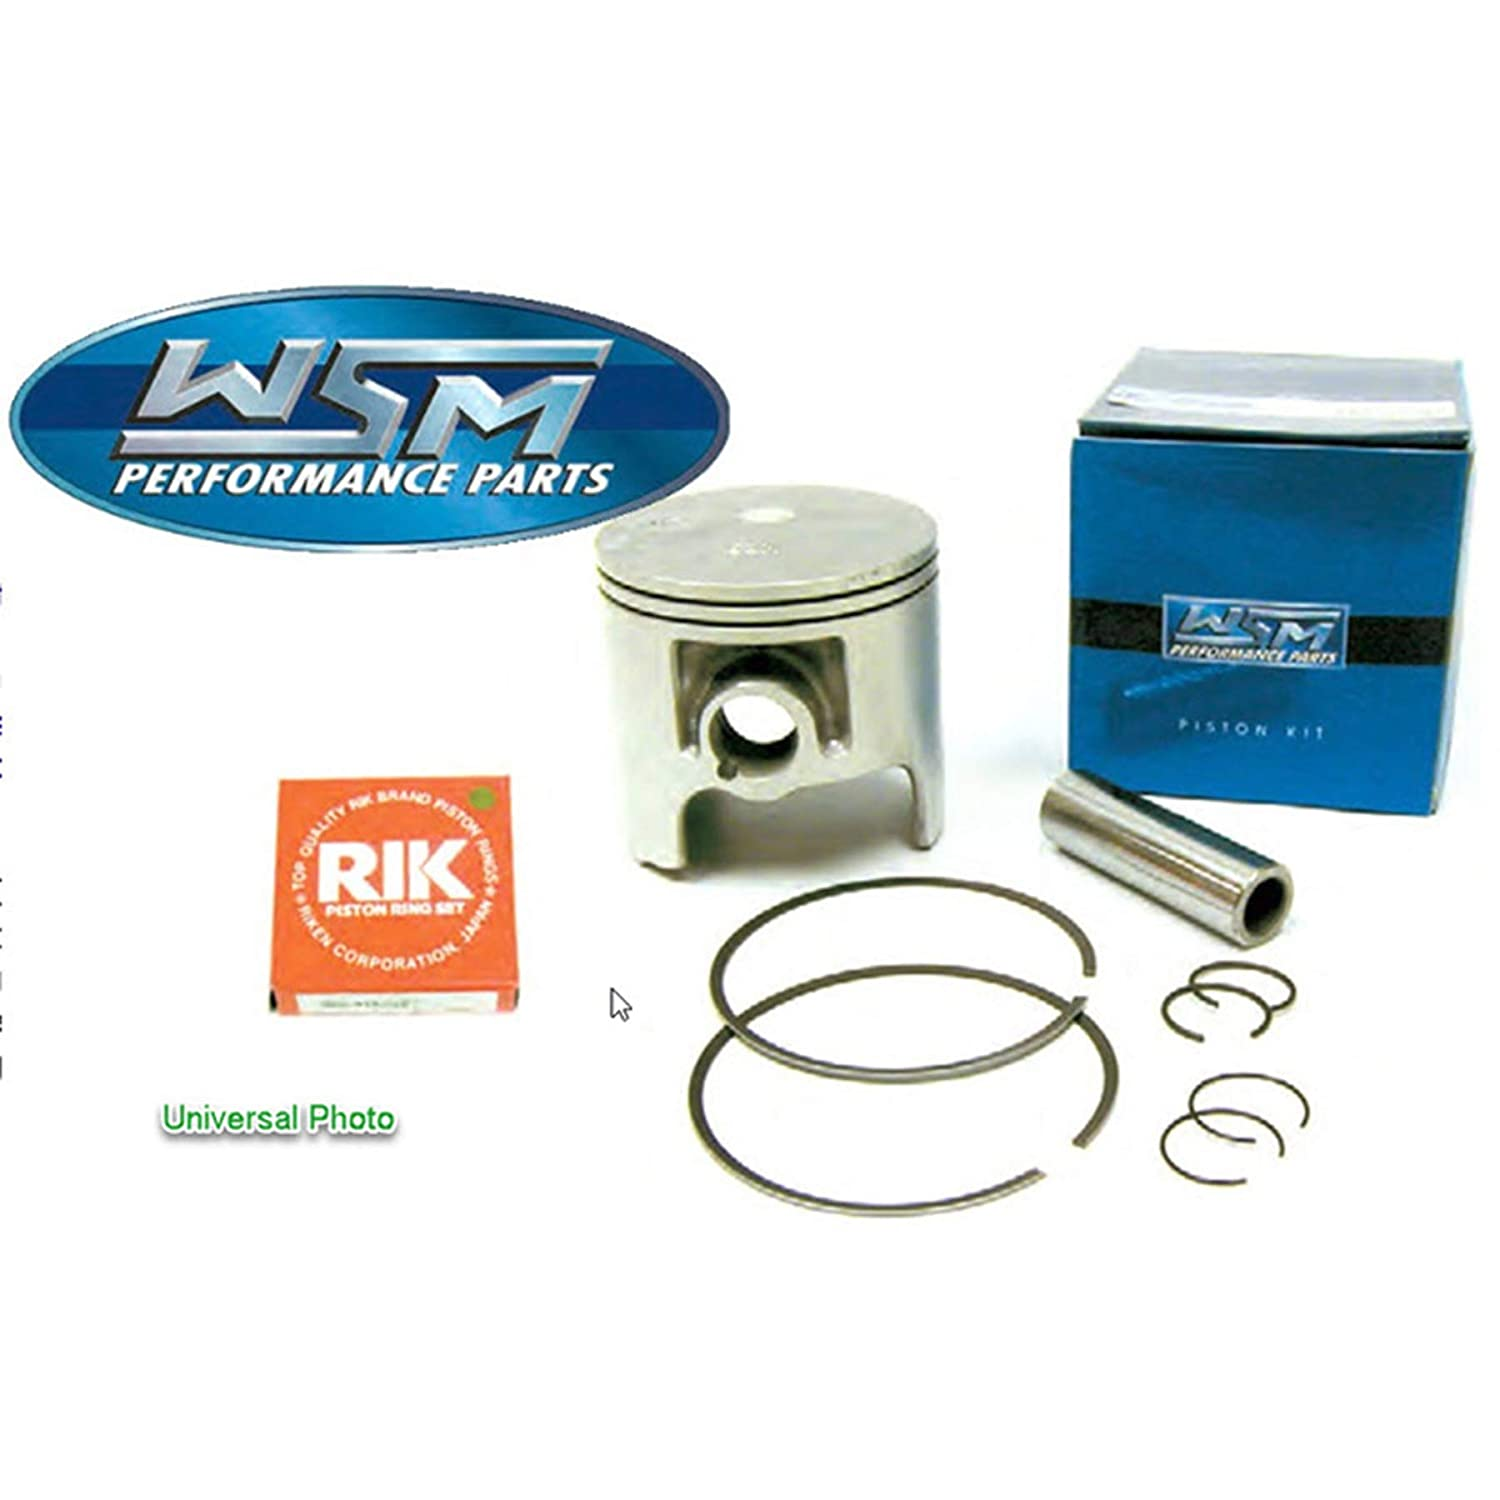 Piston Kit 0.50mm Oversize to 70.25mm Bore For 1995 Polaris SLT 750 Personal Watercraft 755cc